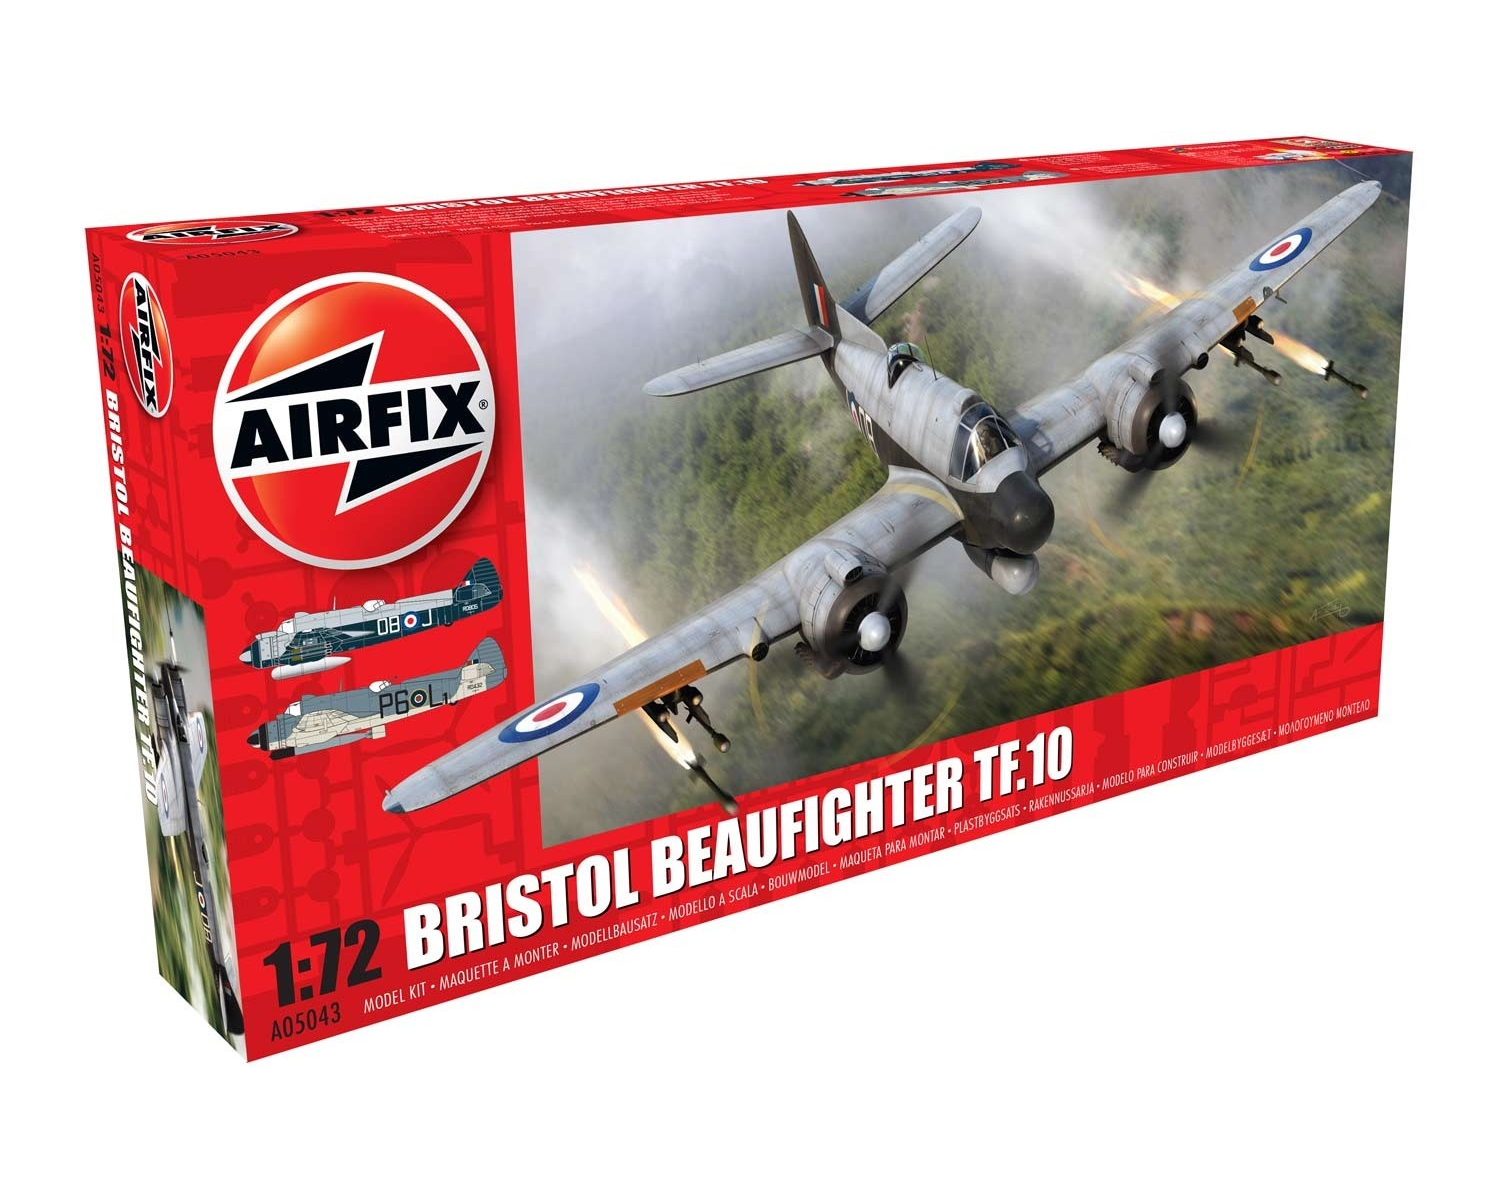 BRISTOL BEAUFIGHTER TF.10